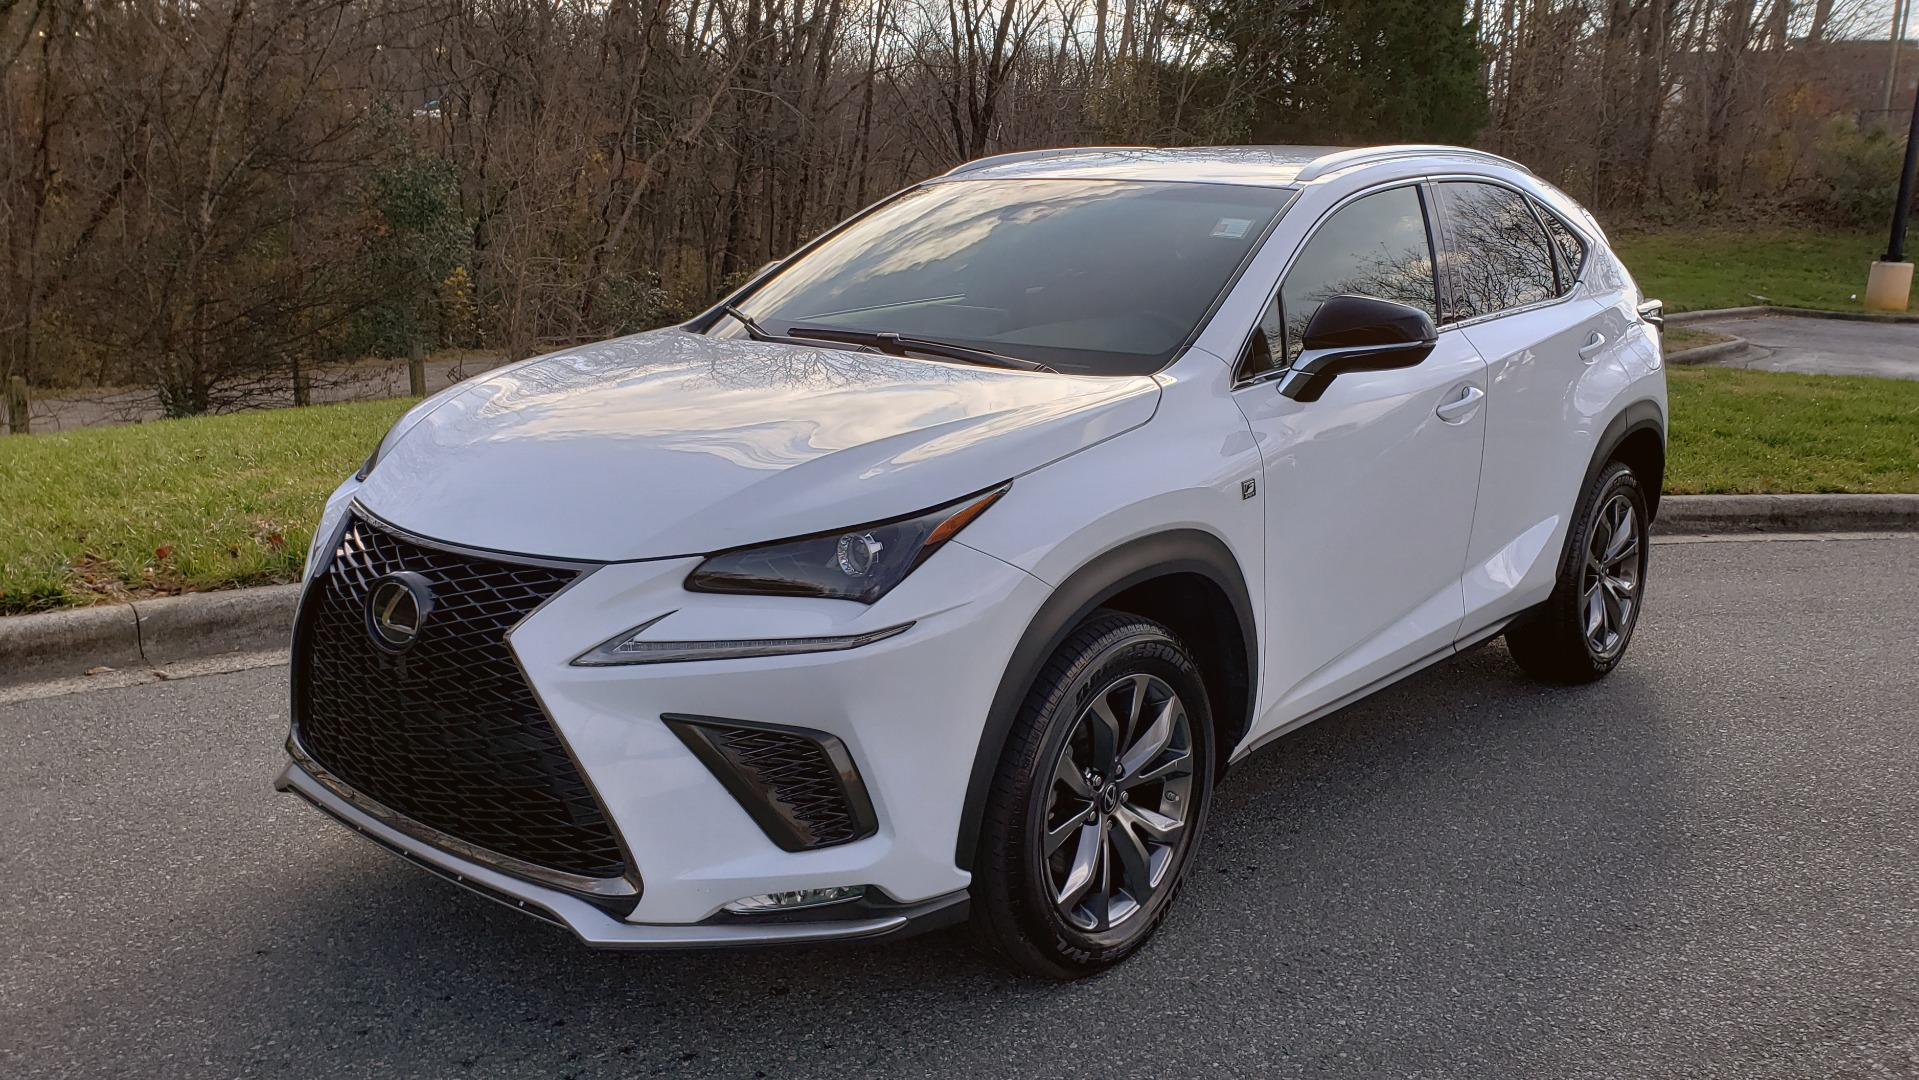 Used 2019 Lexus NX 300 F-SPORT / 2.0L TURBO / LEATHER / 18IN WHEELS / REARVIEW for sale Sold at Formula Imports in Charlotte NC 28227 1